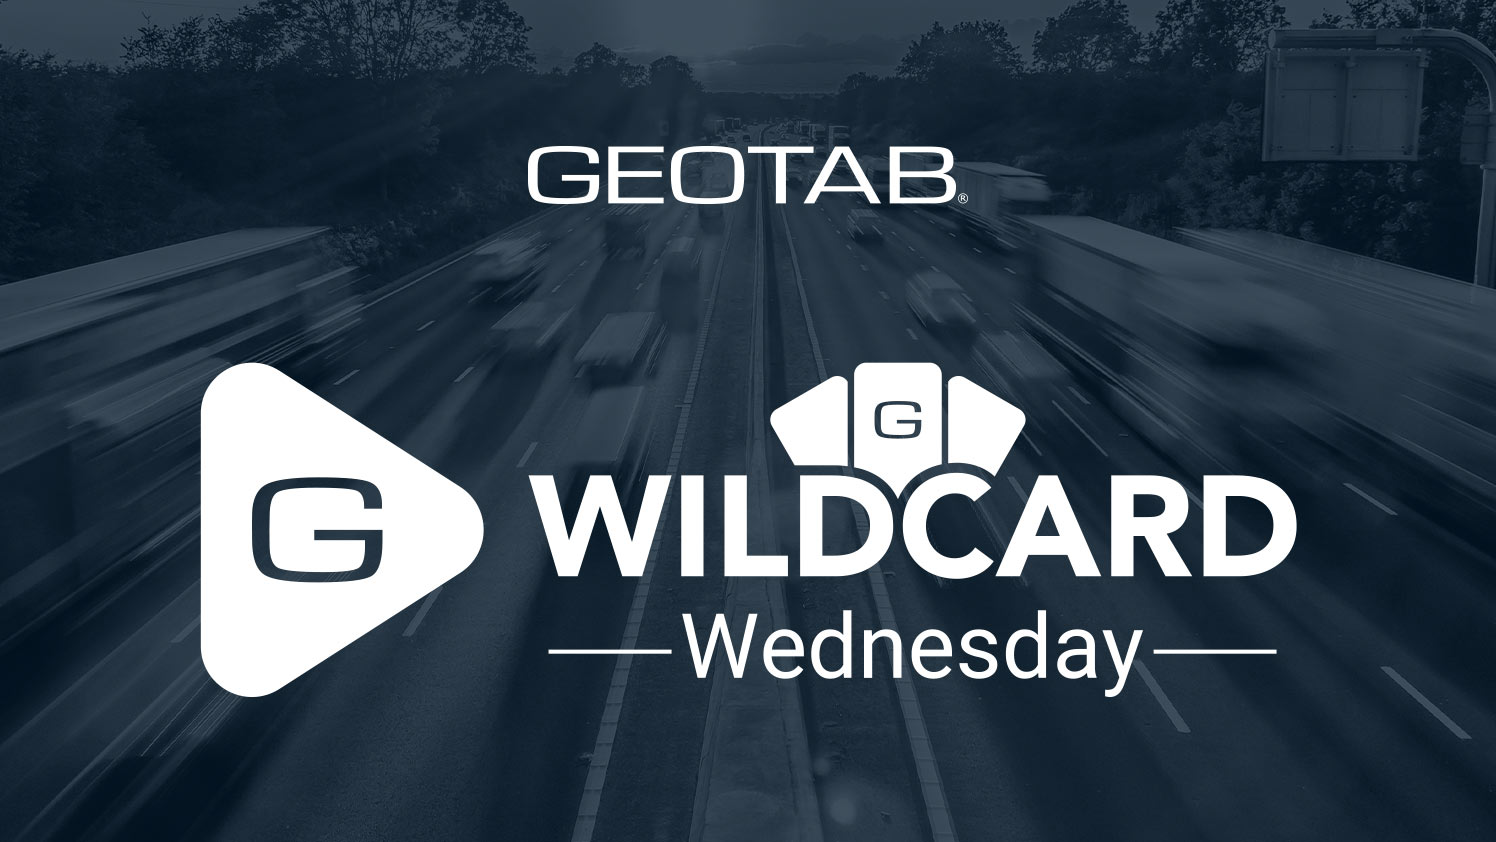 Geotab Wildcard Wednesday event image